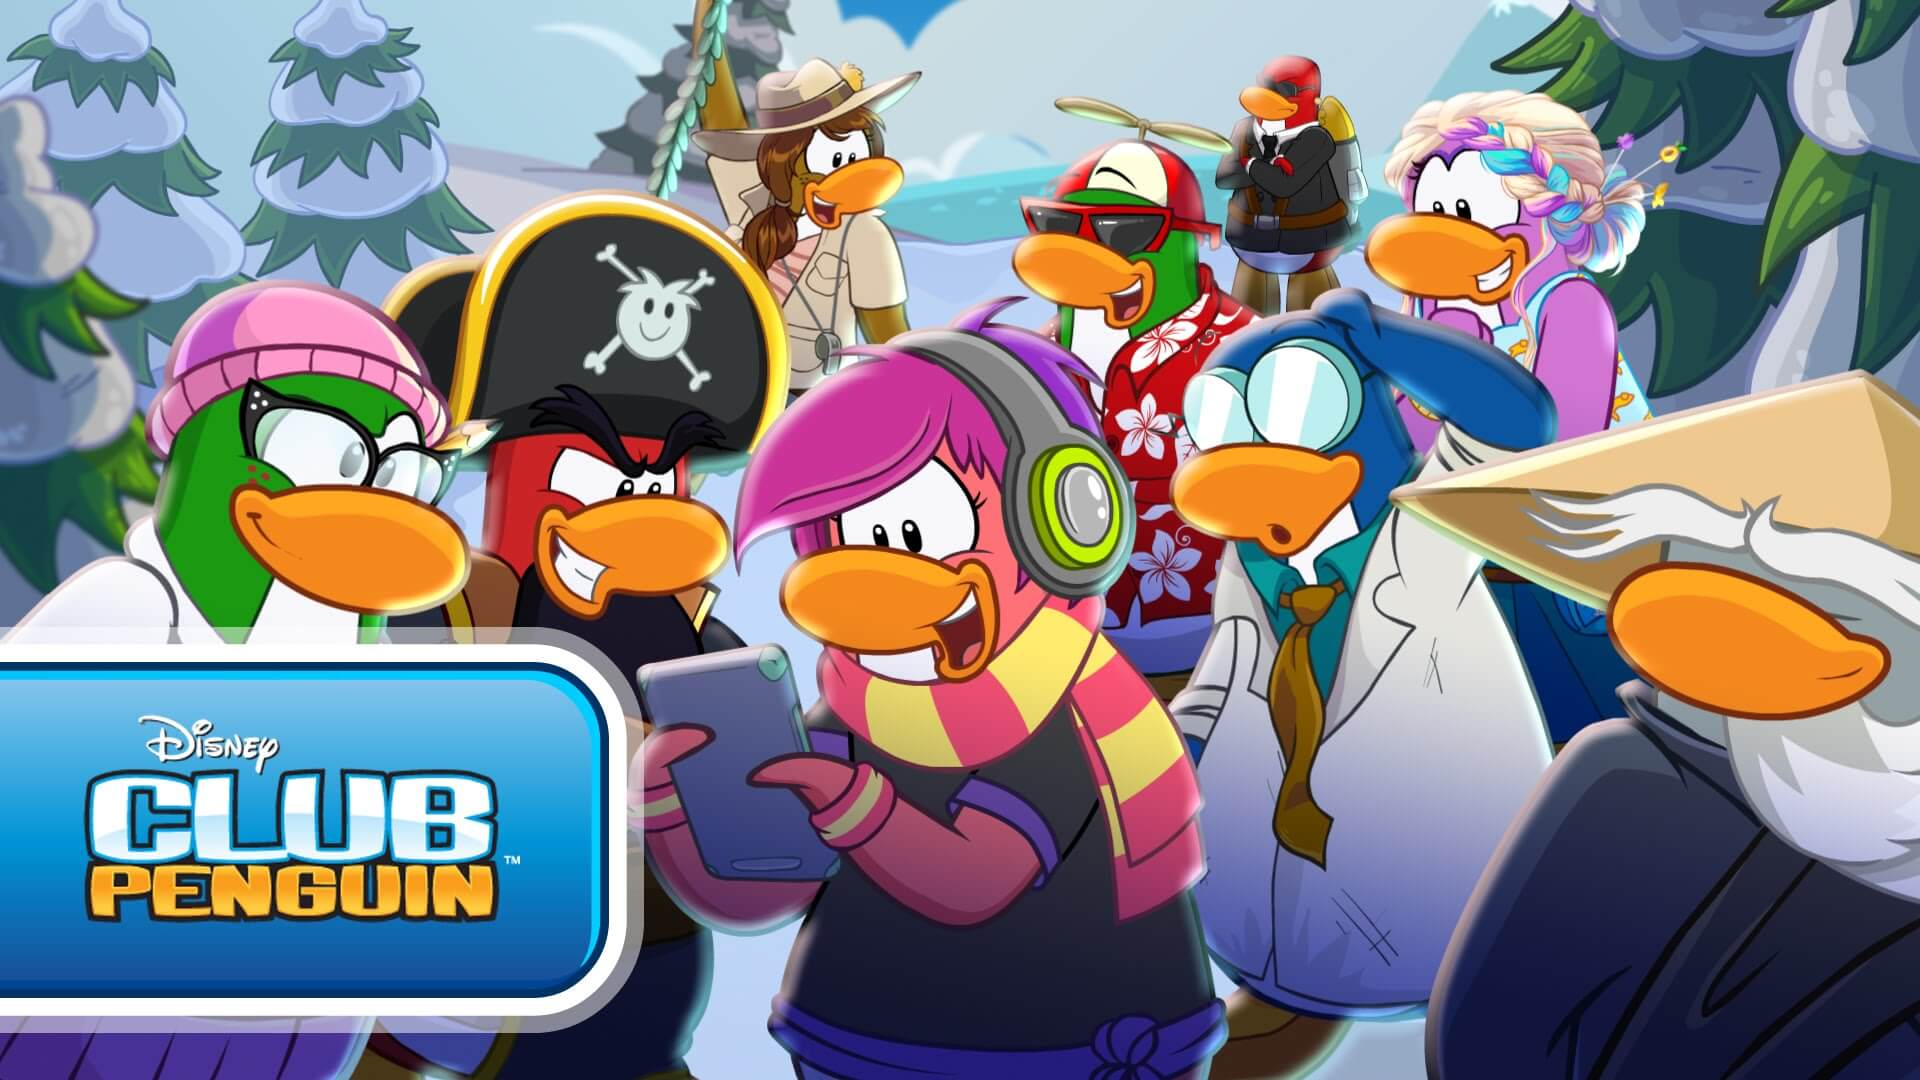 H Club Penguin Disney's so...